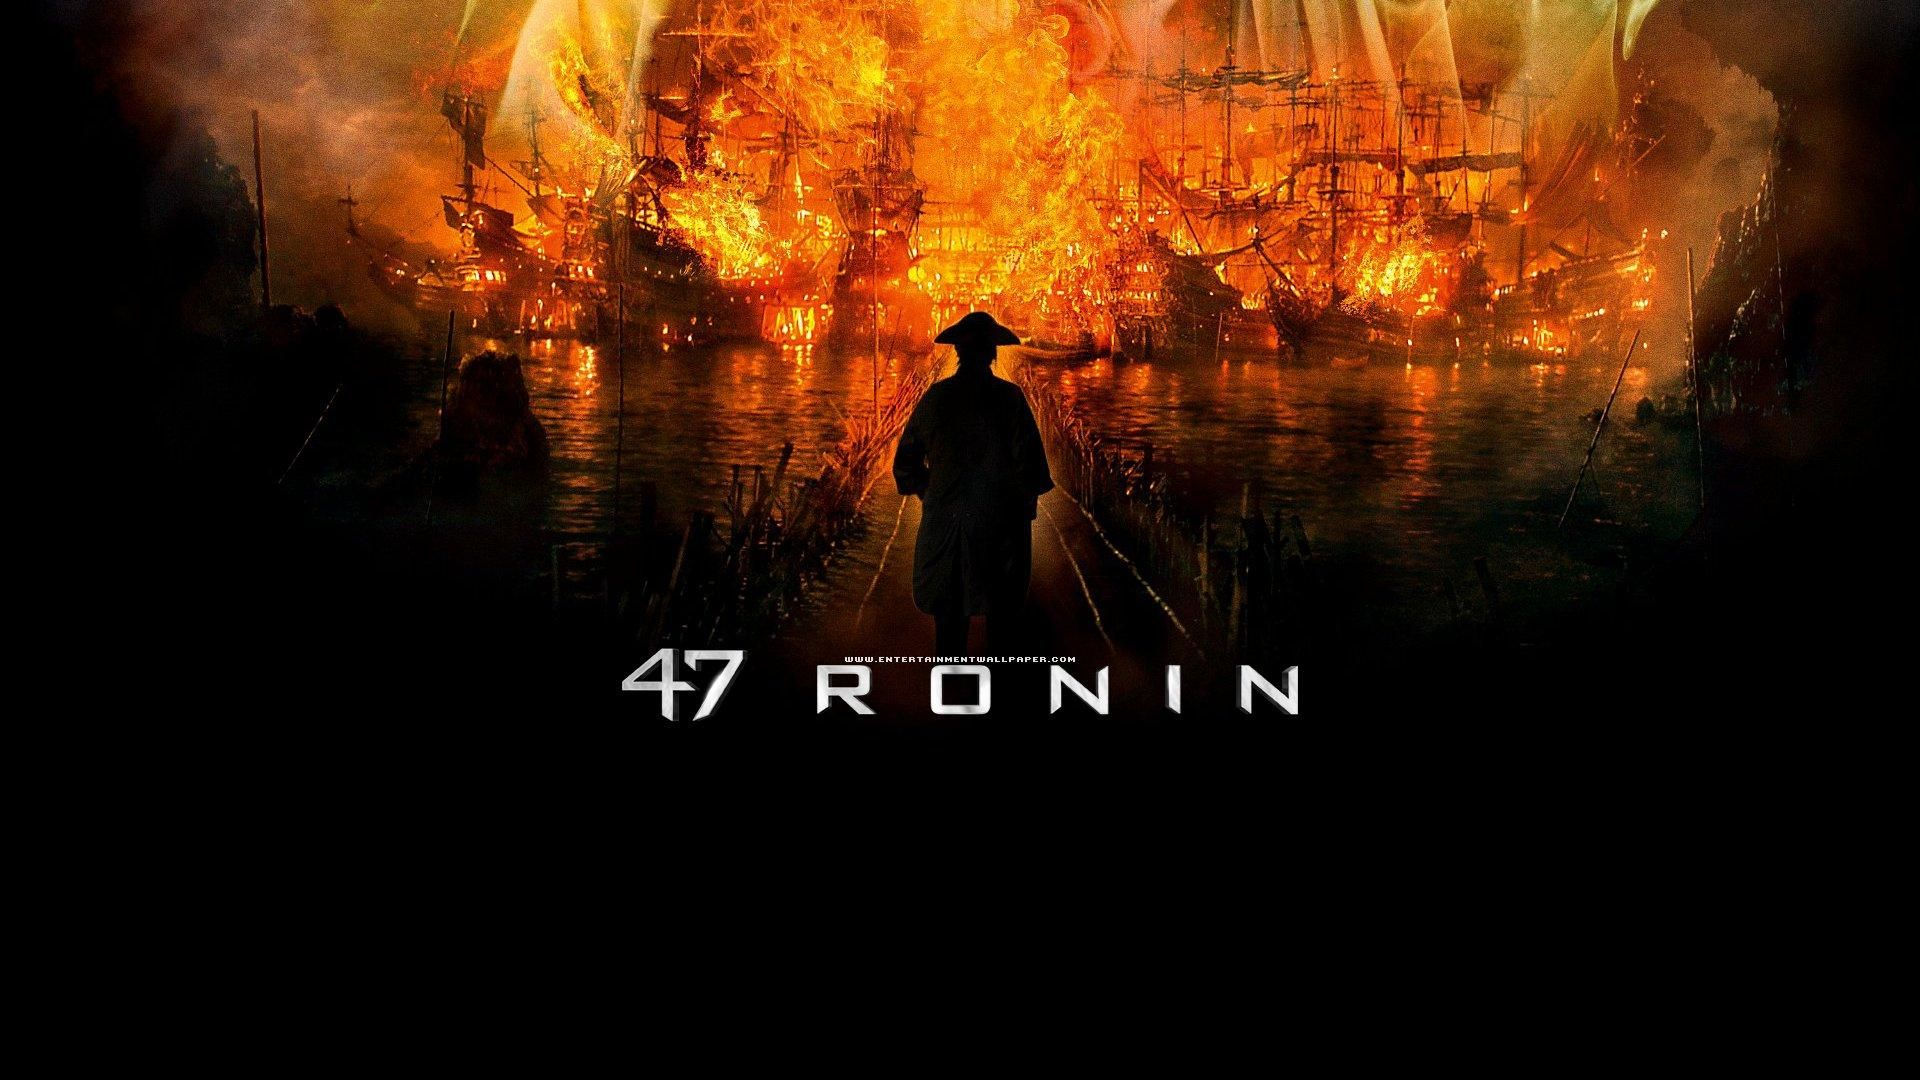 1920x1080 47 Ronin Wallpapers HD Download